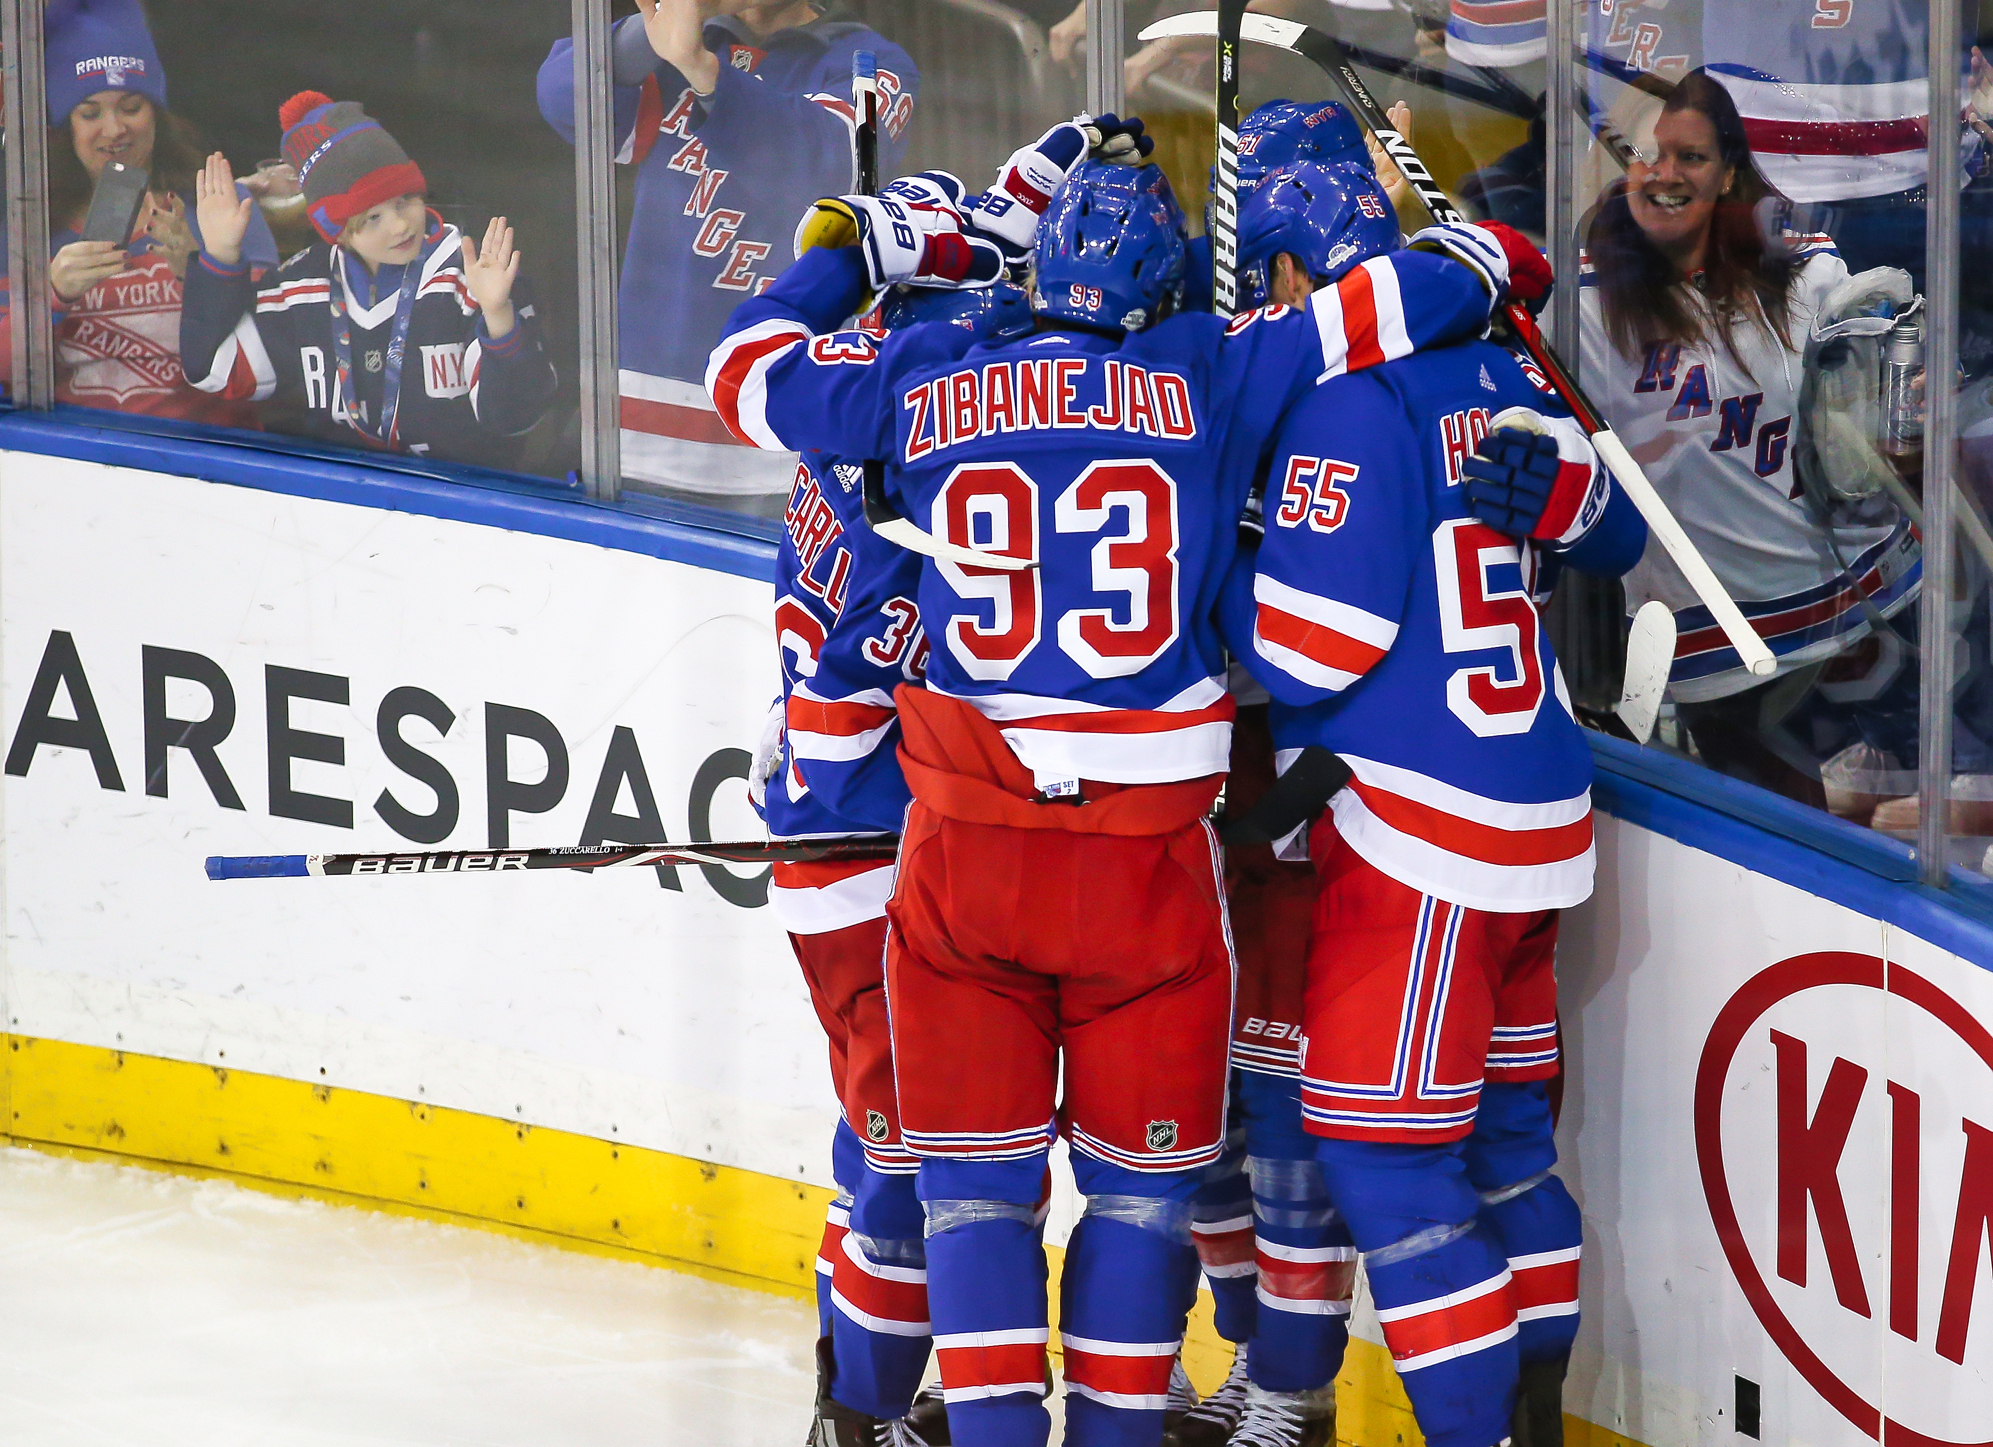 NHL: Vesey's goal boosts Rangers over Jets